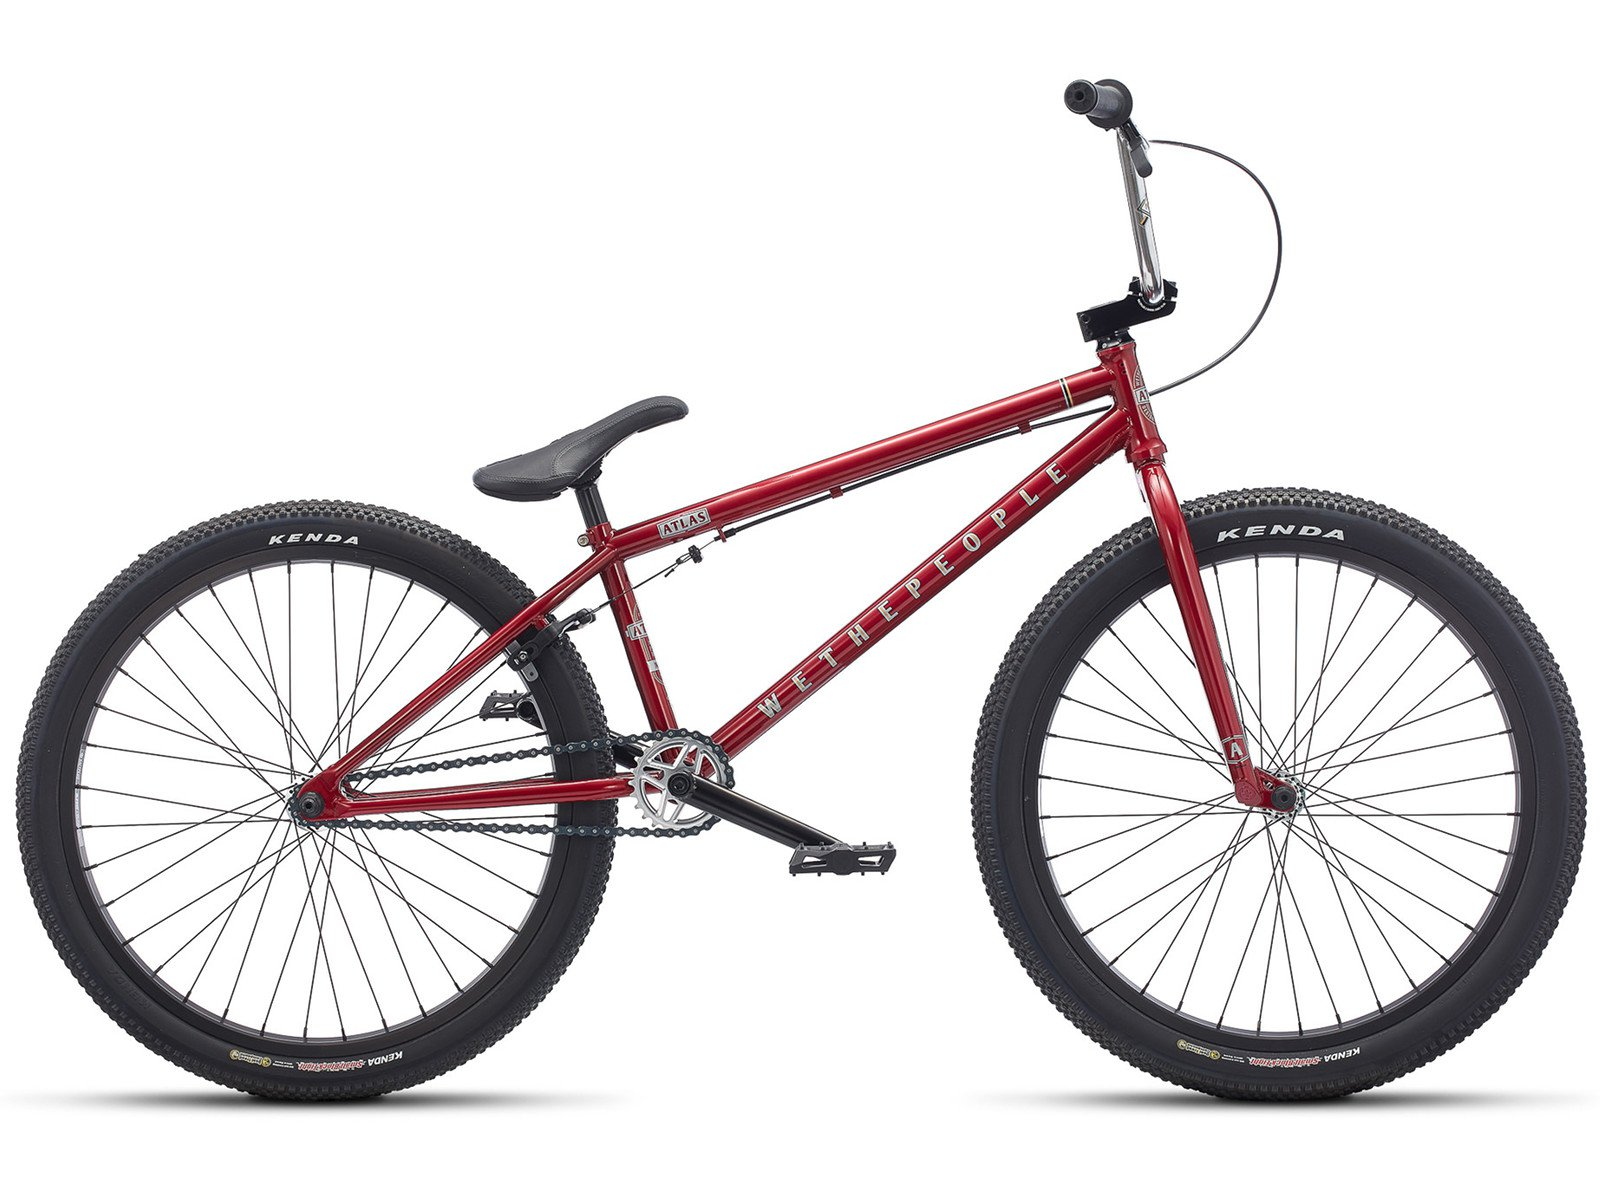 Wethepeople Quot Atlas Quot 2017 Bmx Cruiser Bike 24 Inch